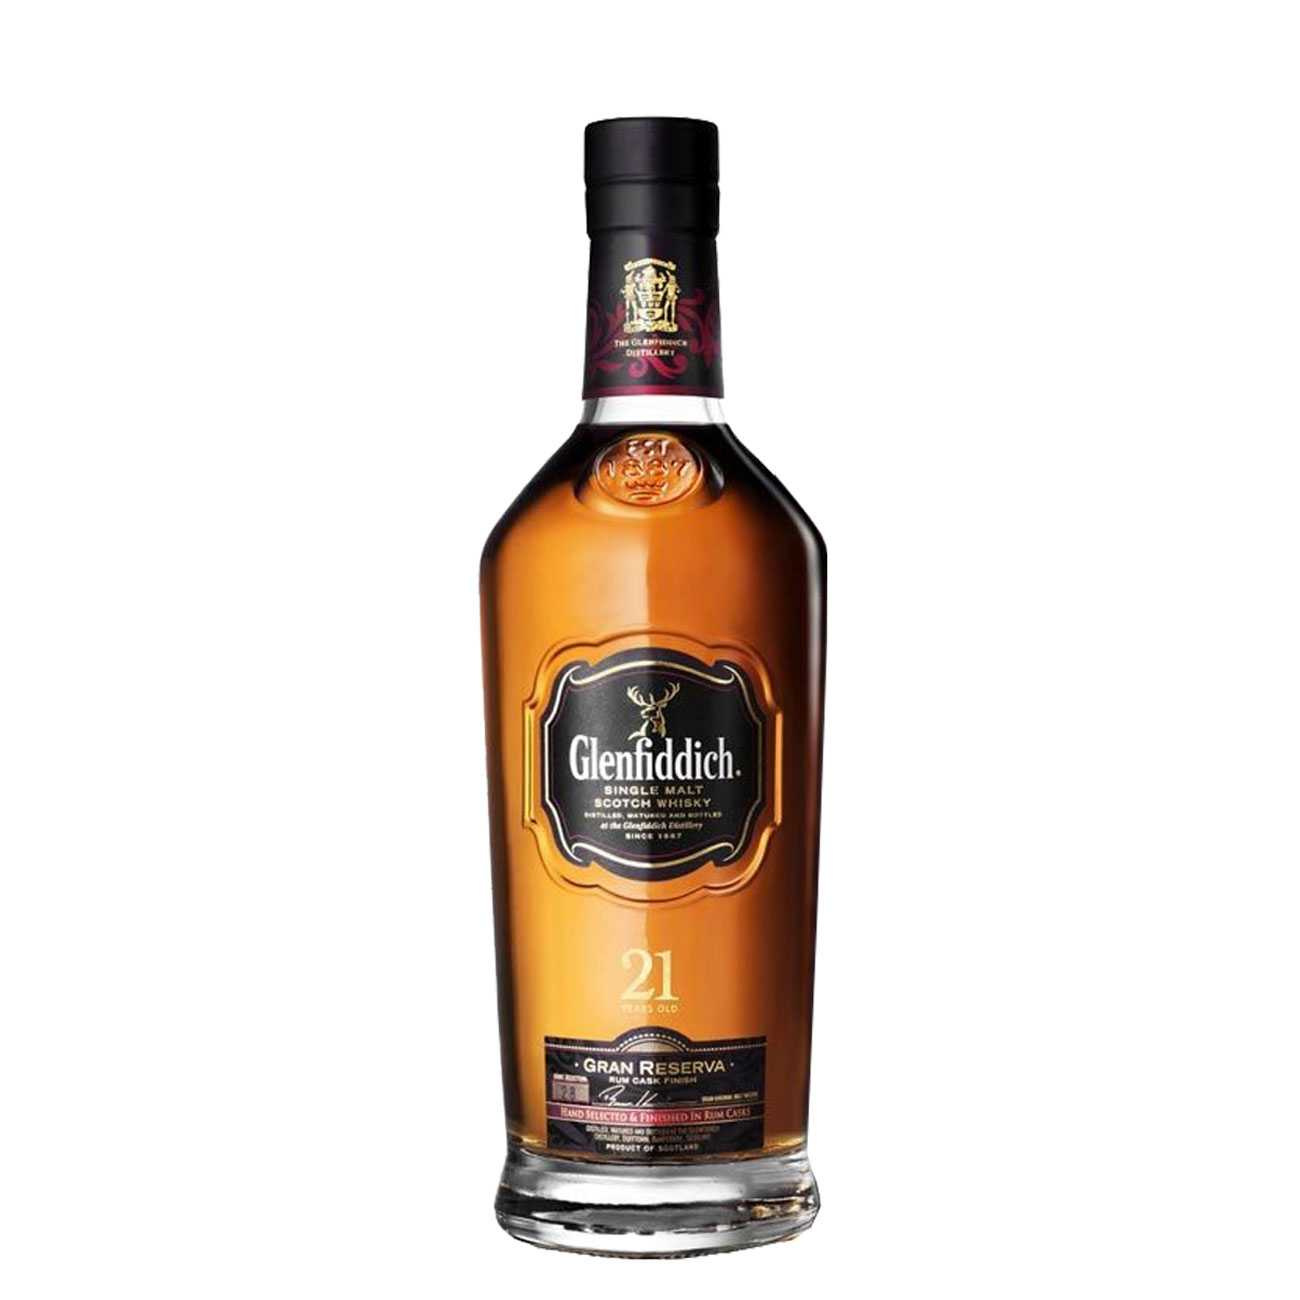 Whisky scotian, GRAND RESERVE 21 YEAR OLD 700 ML, Glenfiddich